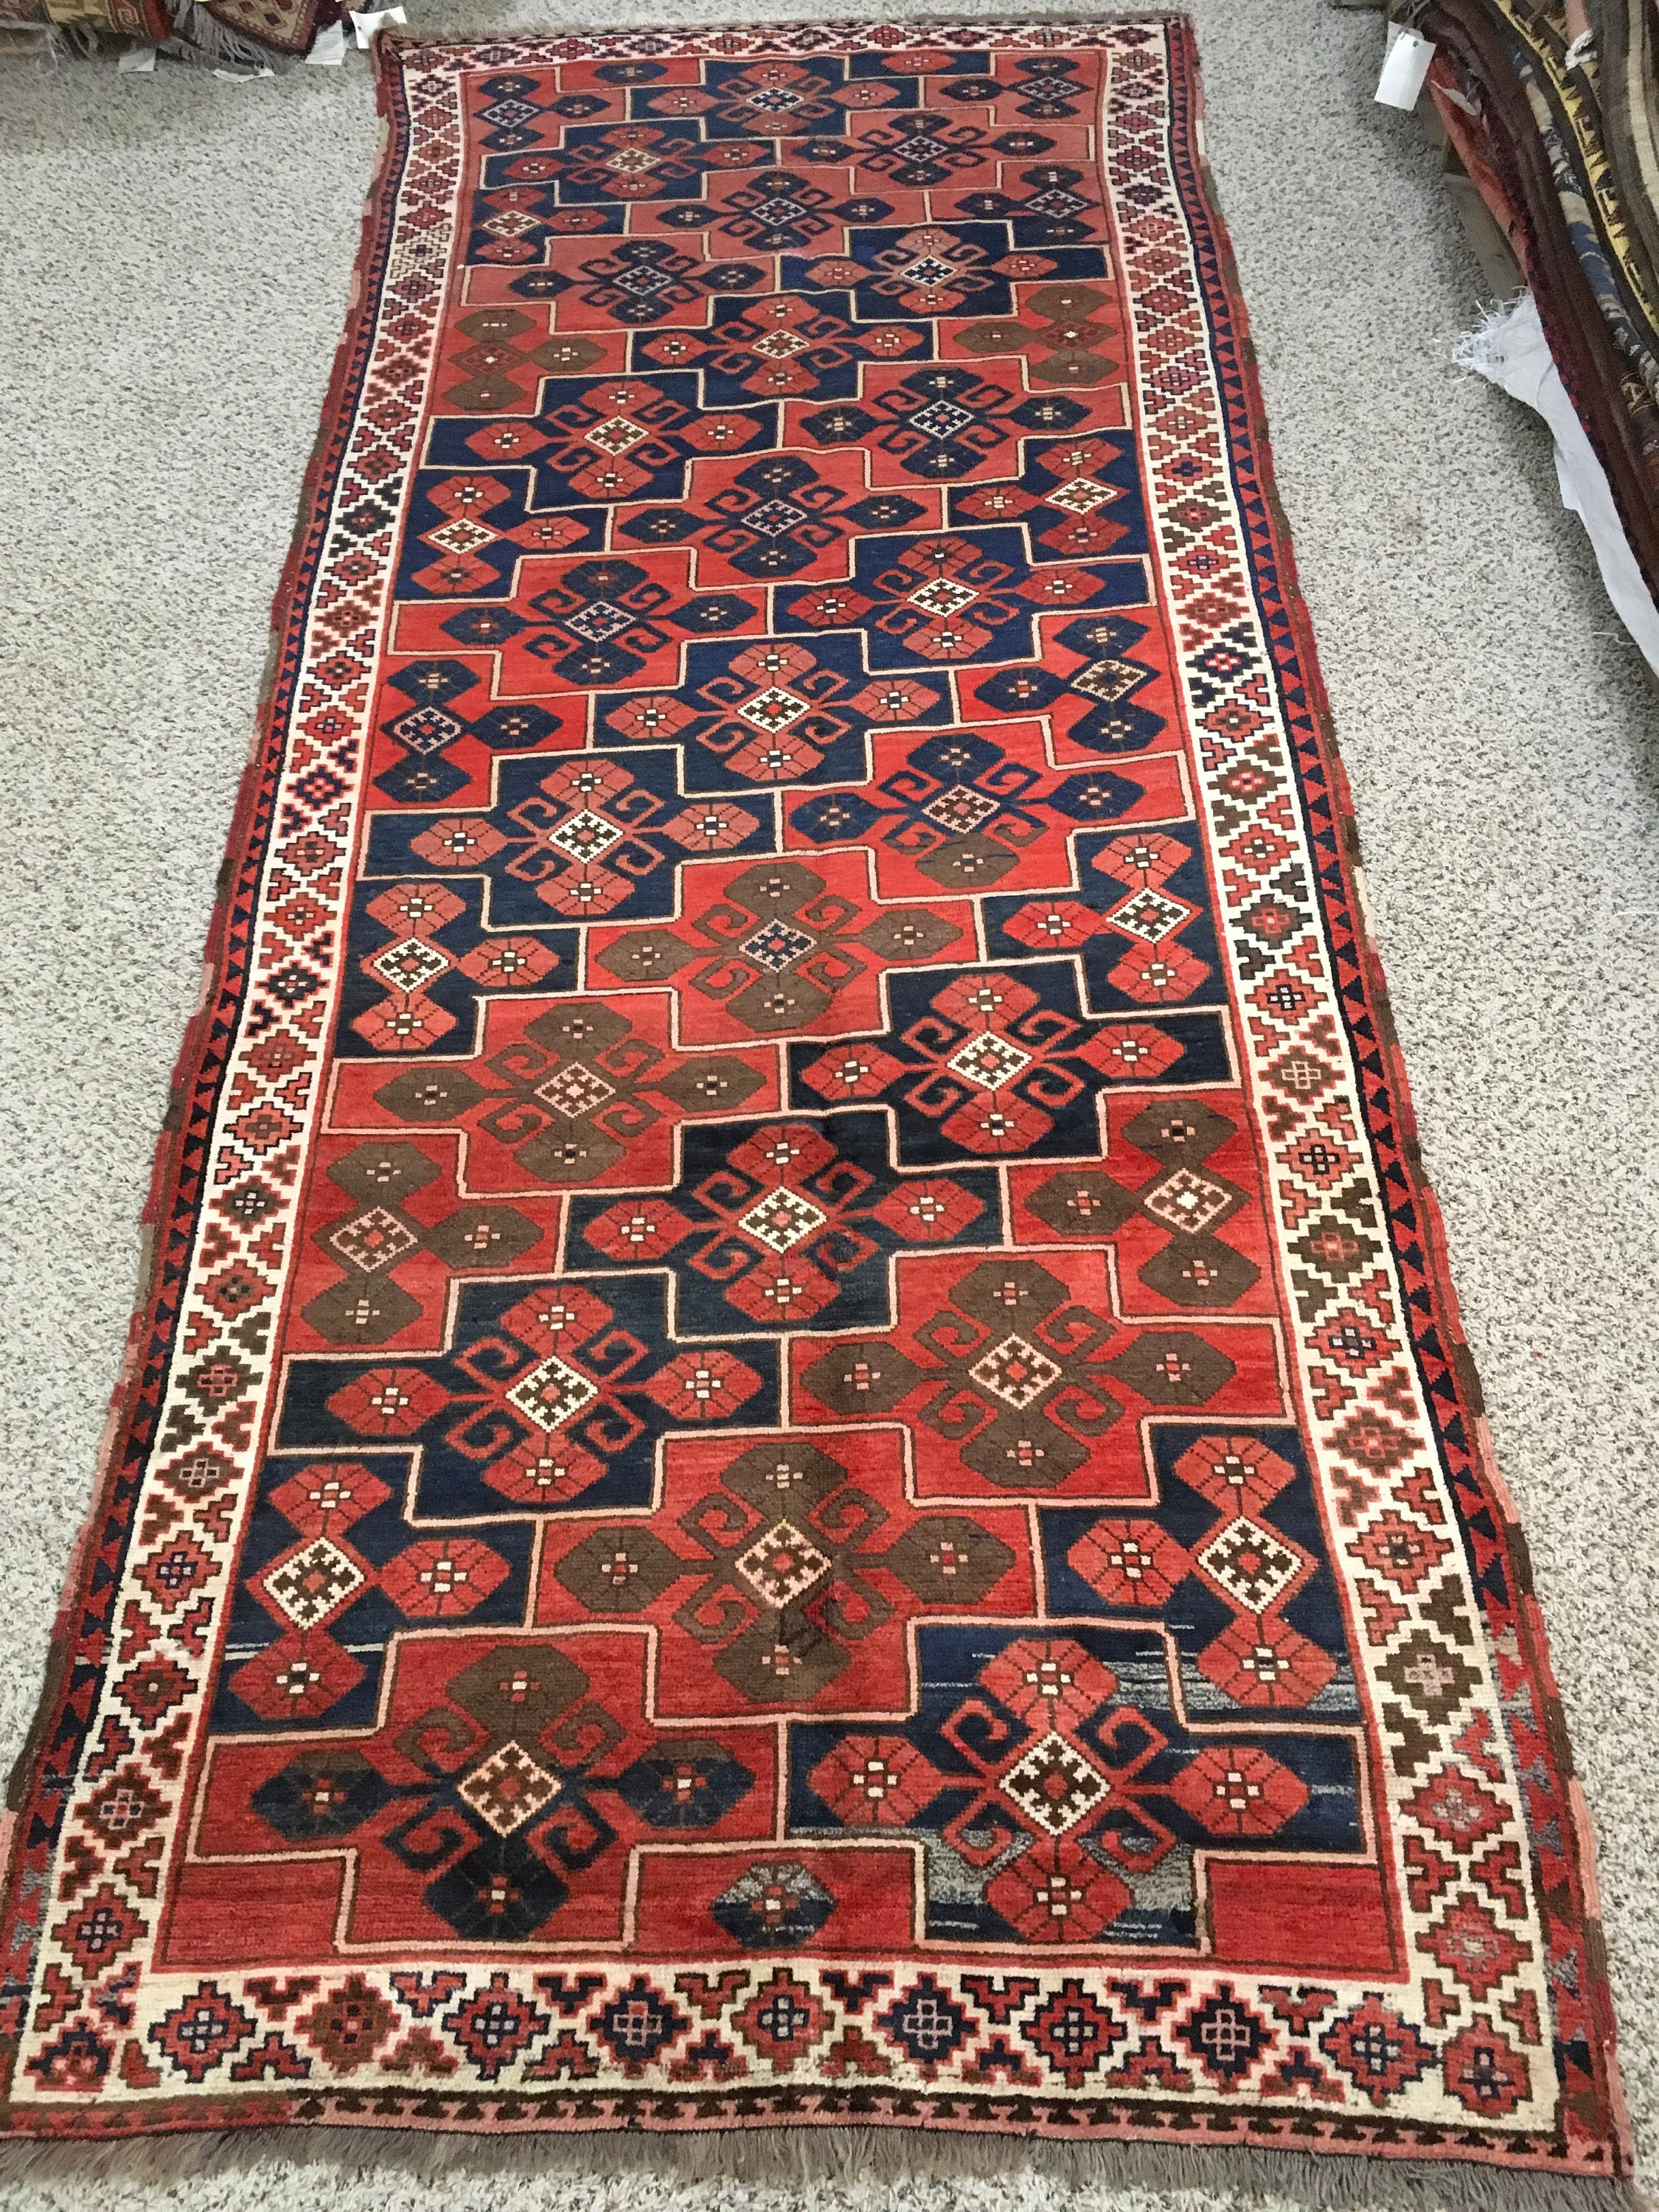 vintage russia antq ghordz rug 100 handmade floor carpets sale for home - Carpets For Sale